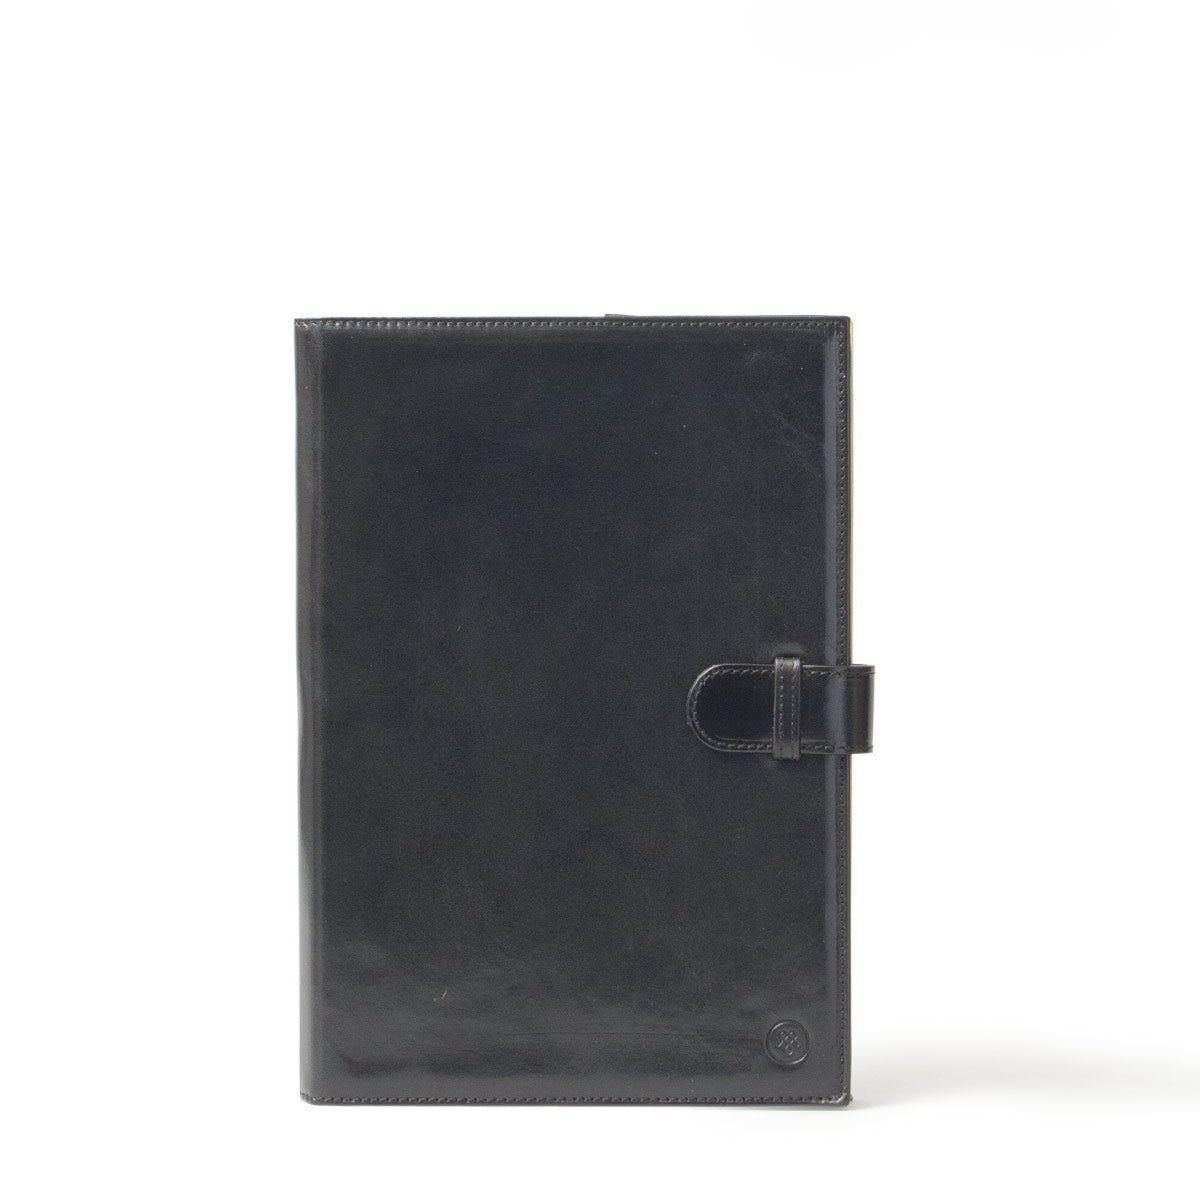 Image 1 of the 'Gallo' Black Veg-Tanned Leather Prestige Business Folder